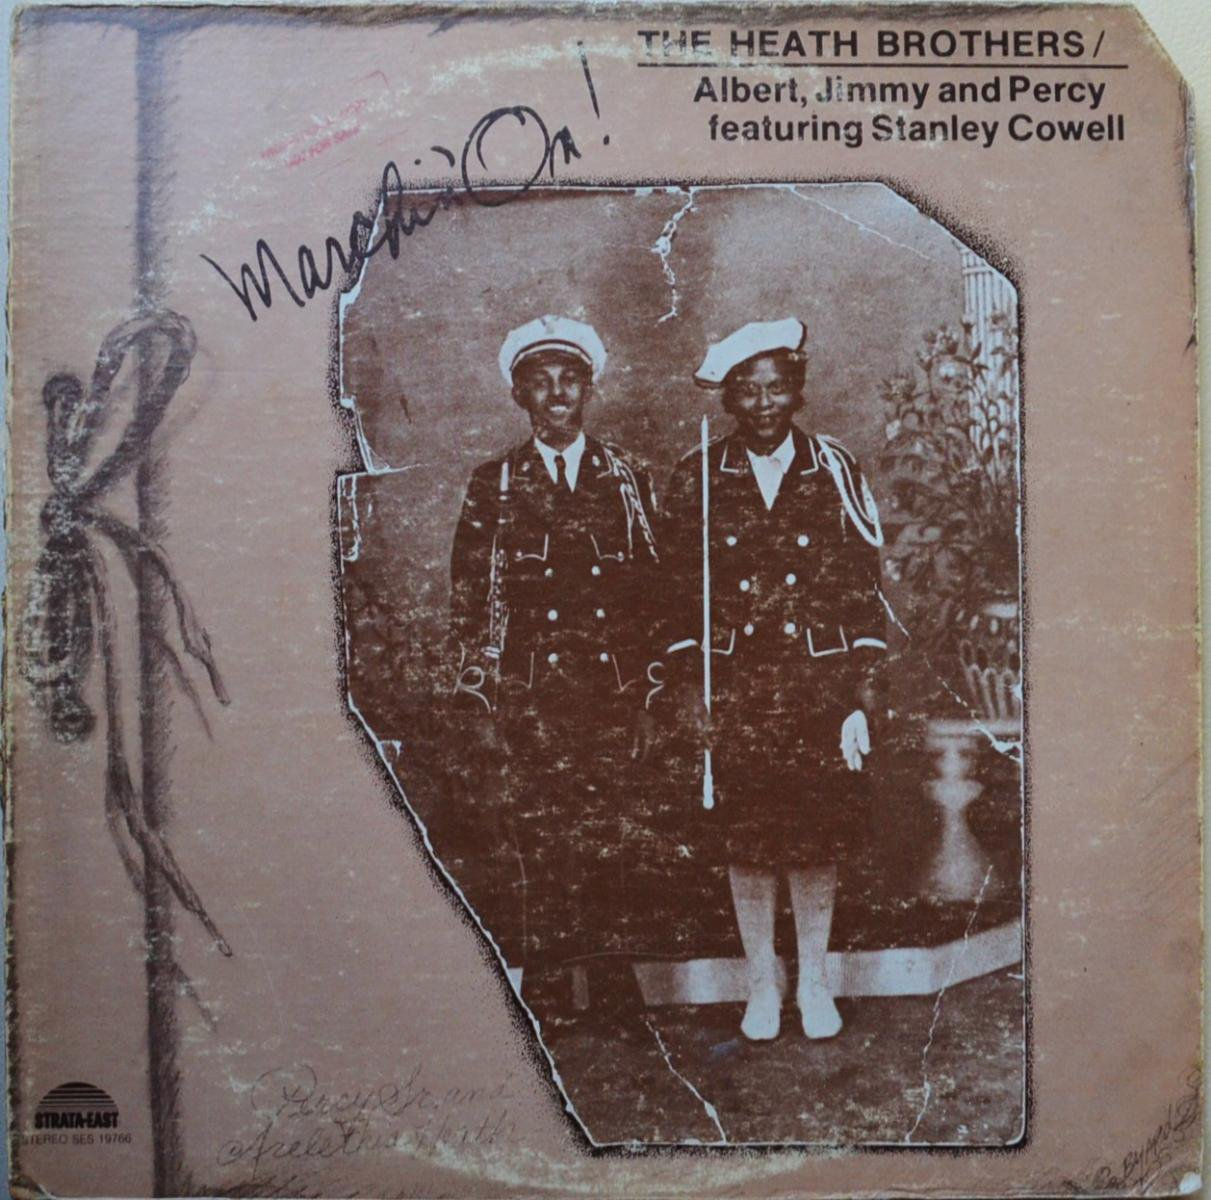 THE HEATH BROTHERS / ALBERT, JIMMY AND PERCY FEATURING STANLEY COWELL / MARCHIN' ON! (LP)